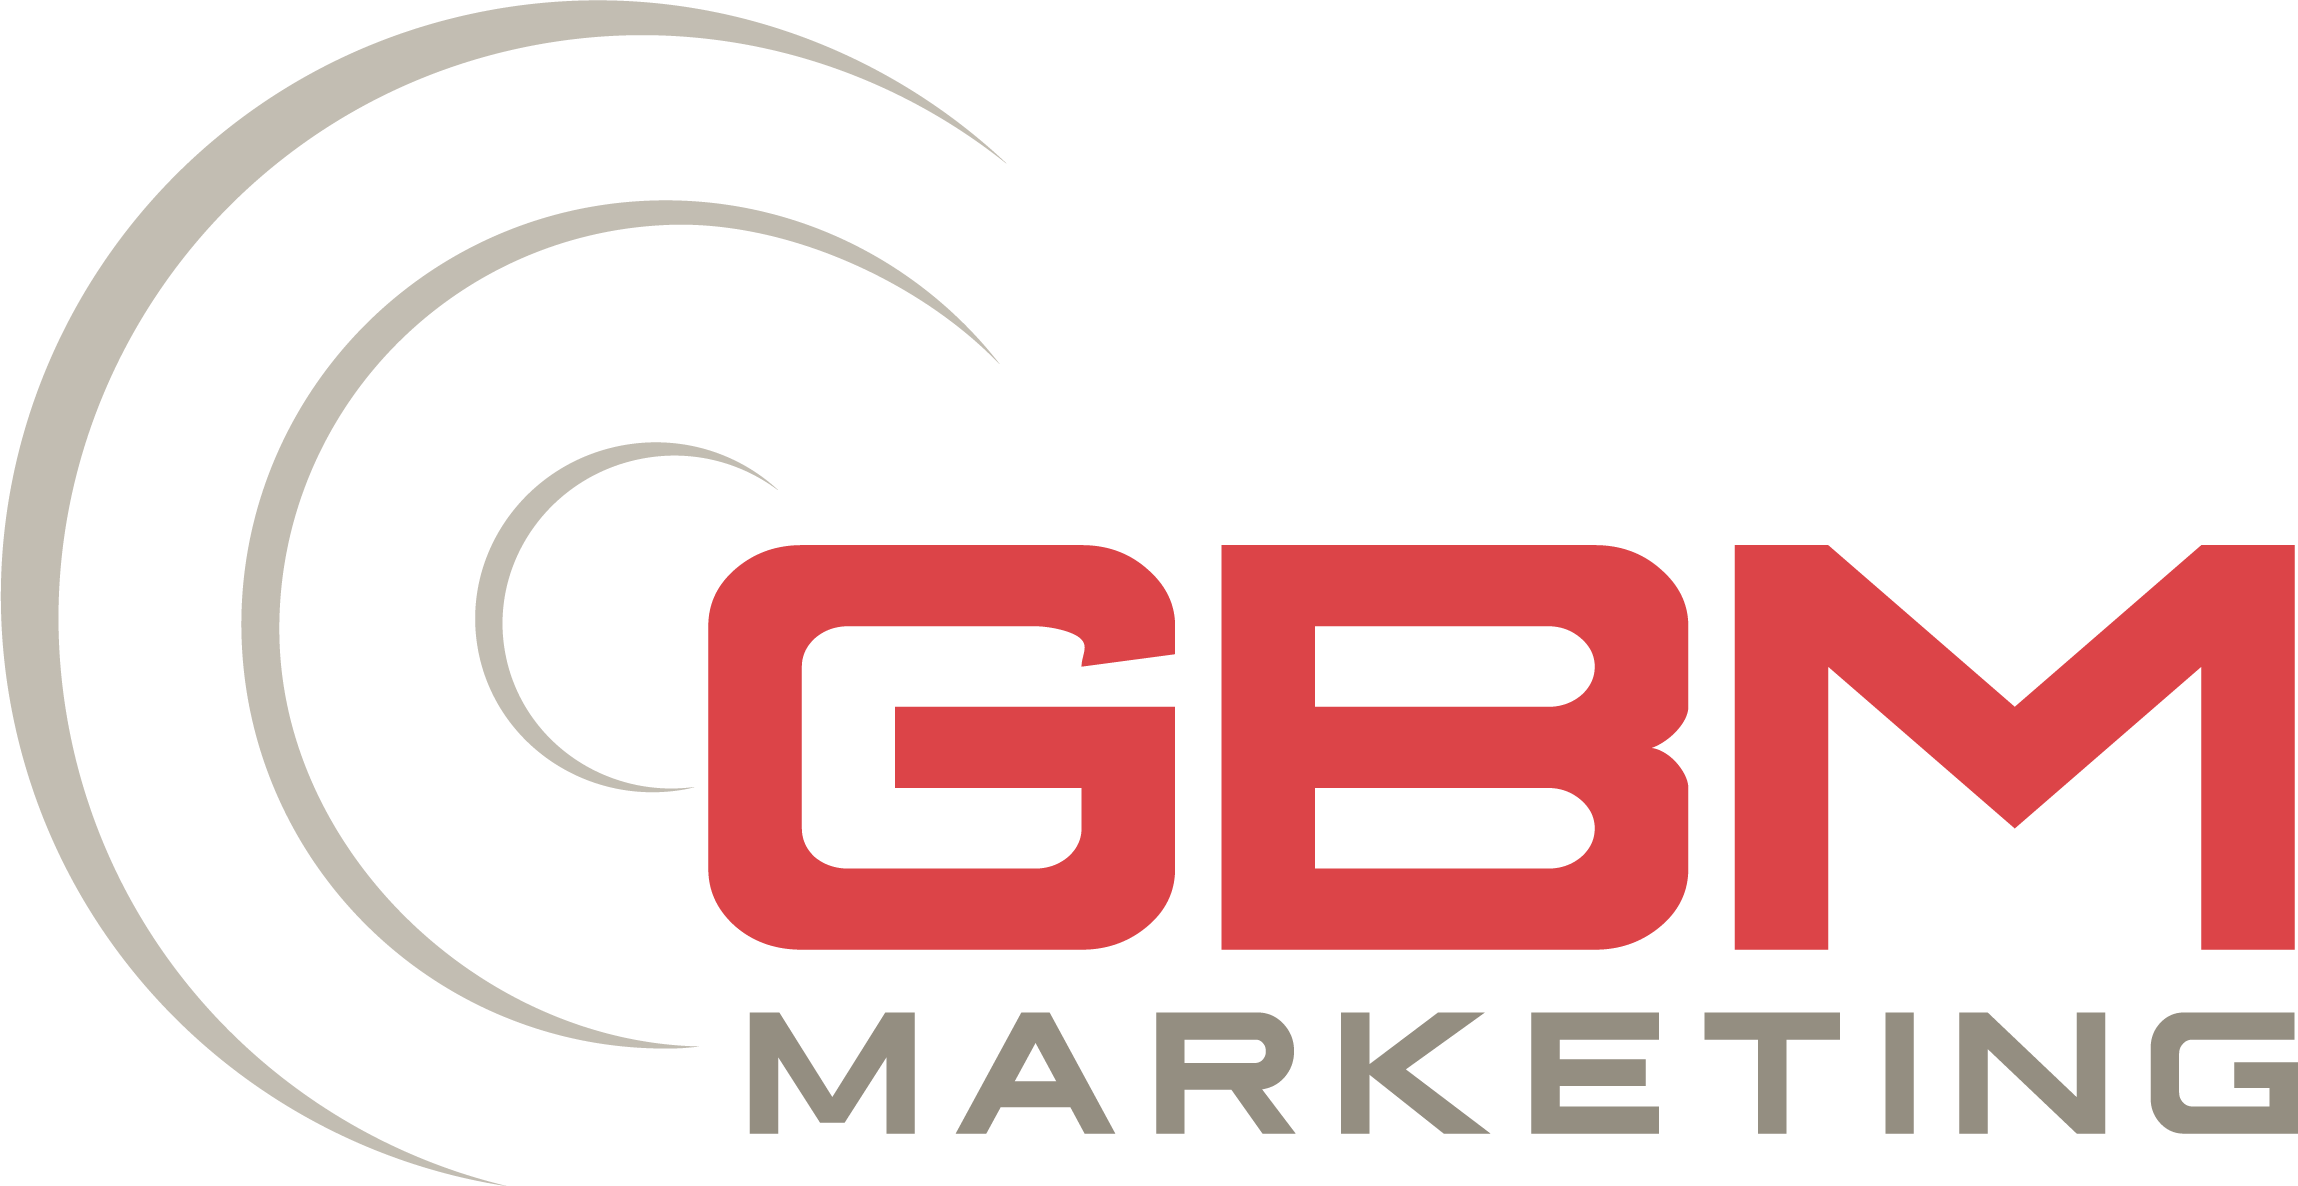 GBM Marketing, Inc. Domain and Web Site Center for Clients